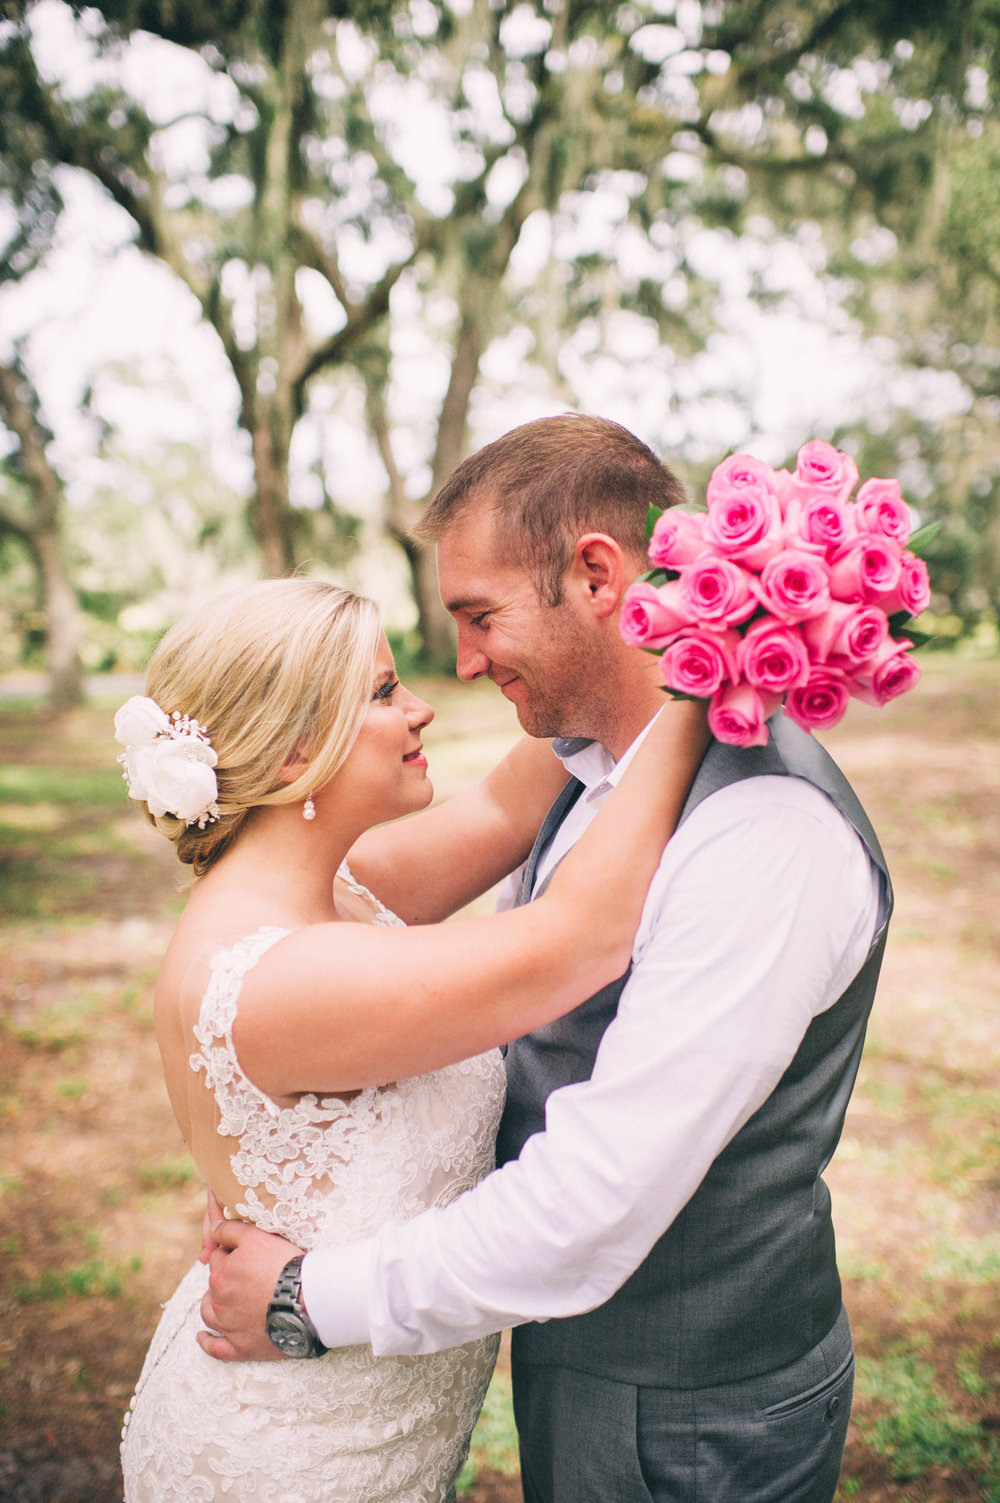 Sarah Katherine Davis Photography Louisville Kentucky Photographer Jekyll Island Wedding Destination Beach Wedding